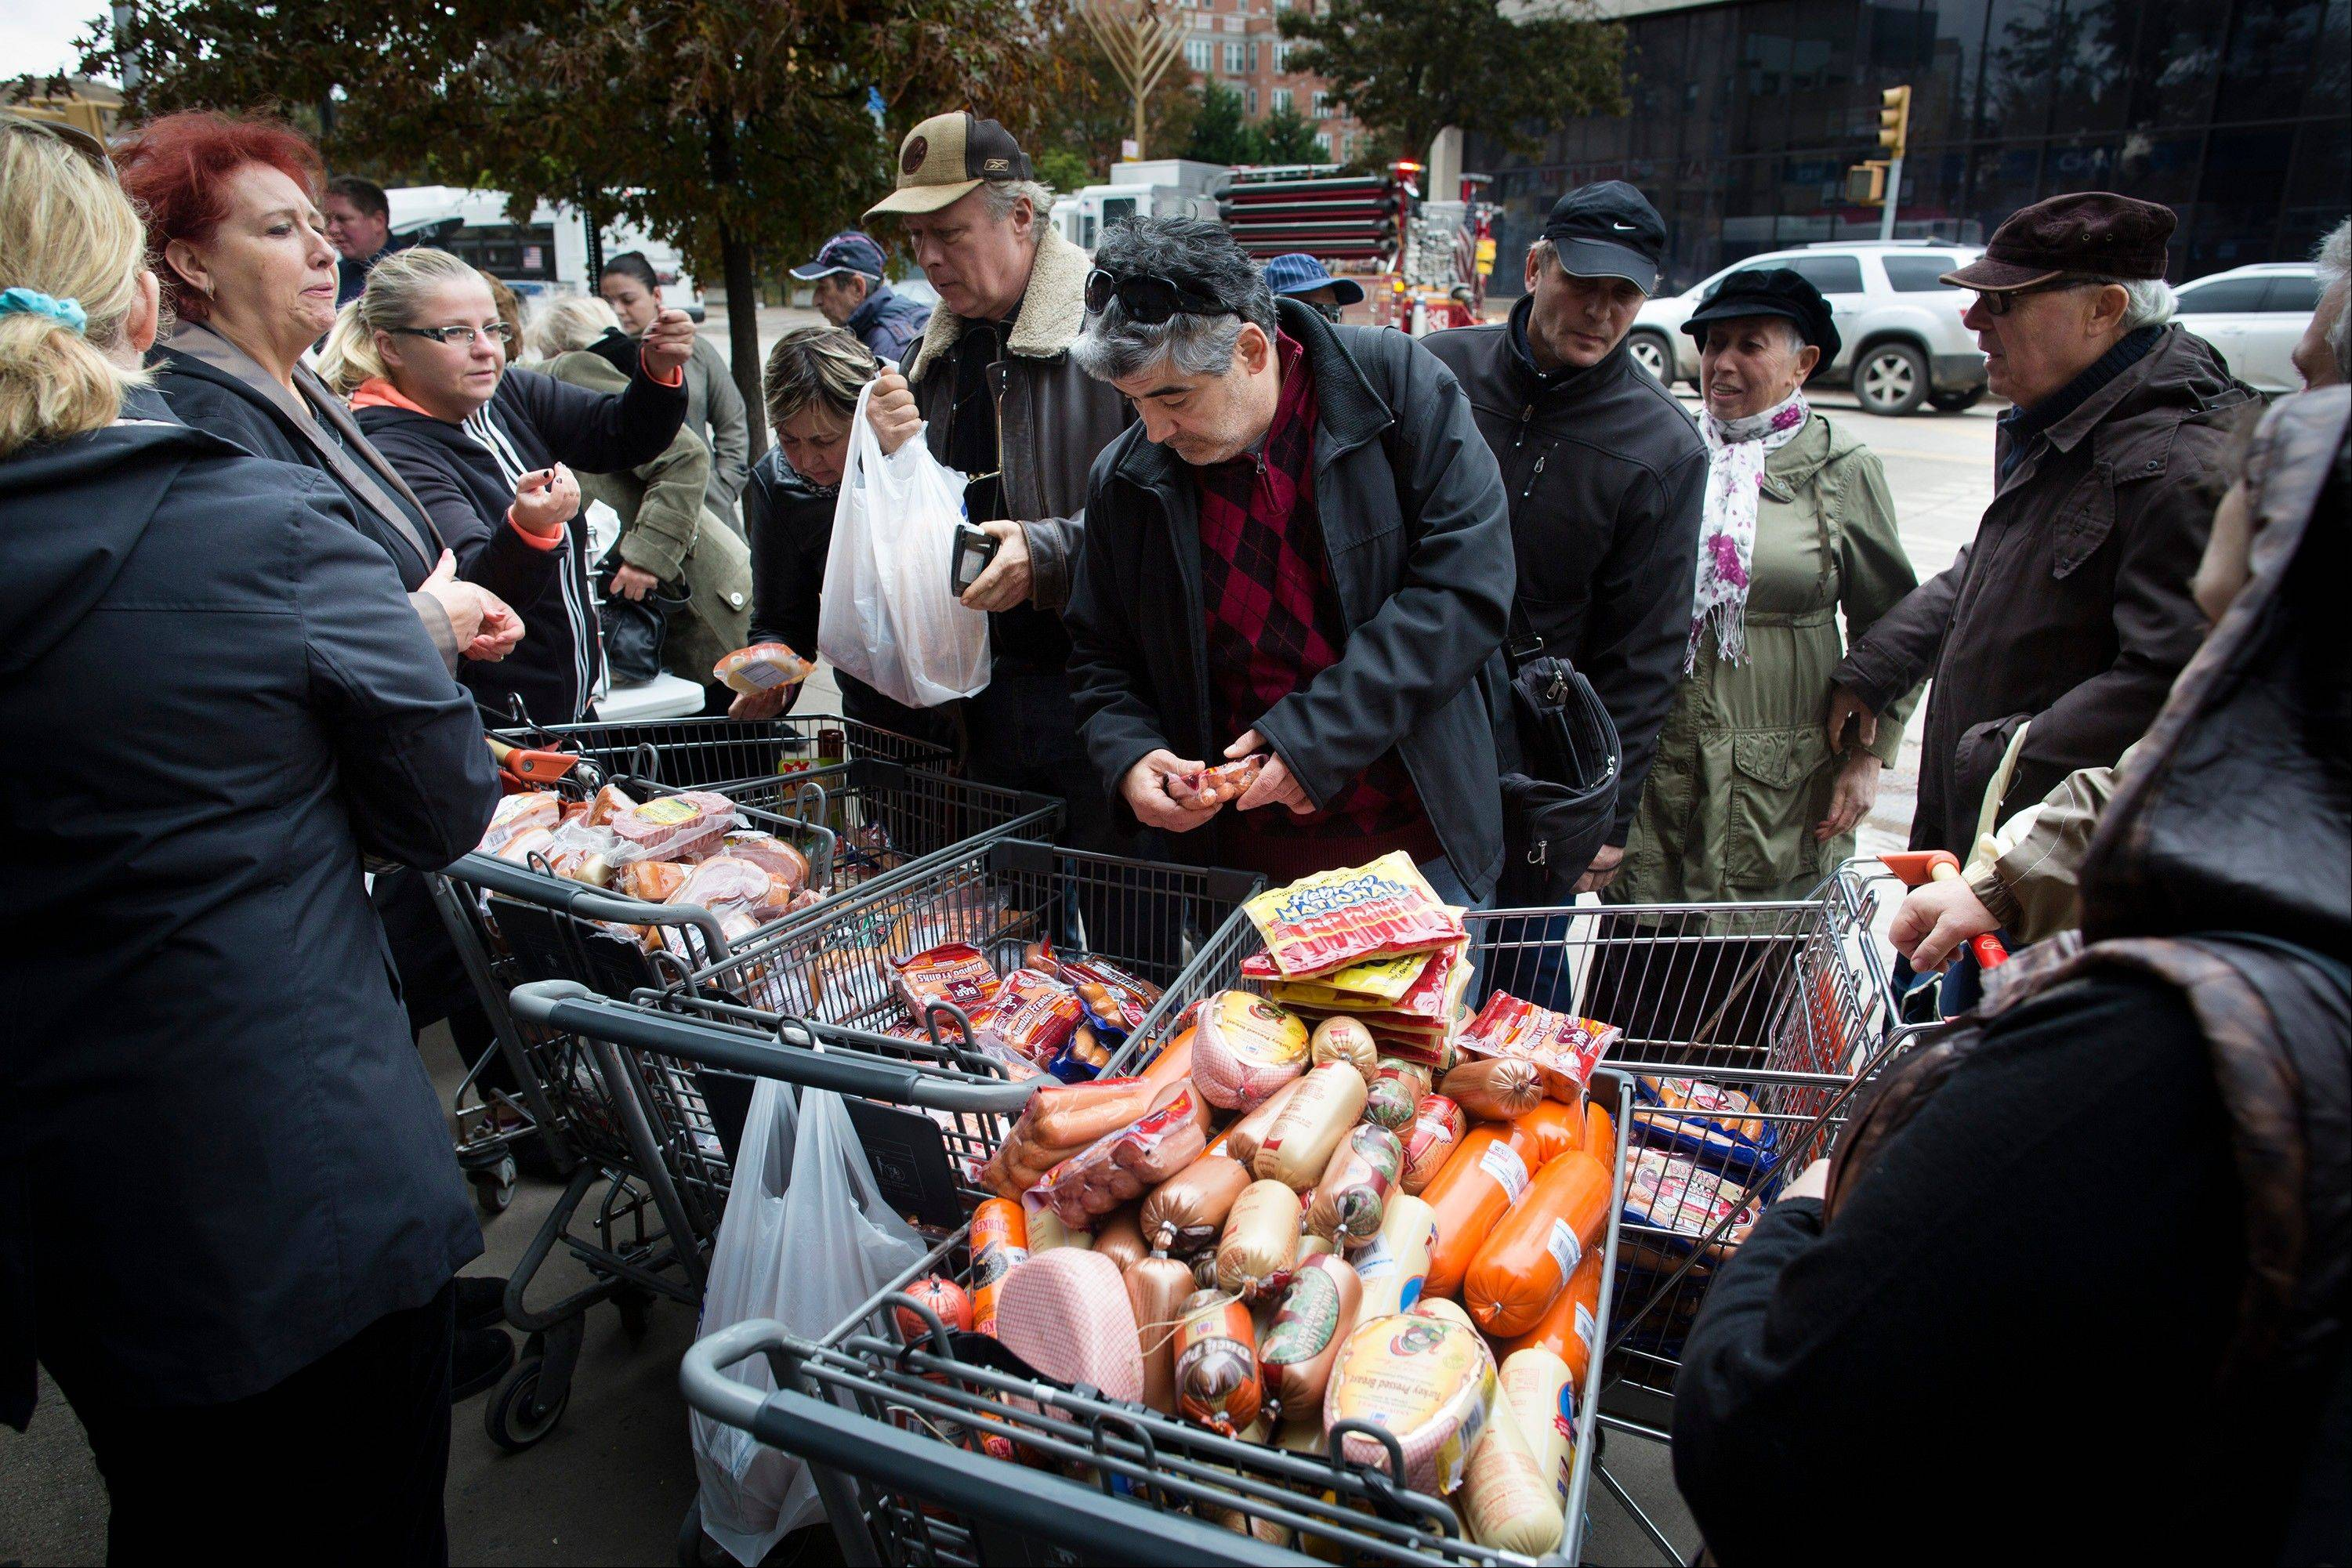 People shop for food piled into shopping carts Wednesday in Brooklyn. People in the coastal corridor battered by superstorm Sandy took the first cautious steps Wednesday to reclaim routines upended by the disaster, even as rescuers combed neighborhoods strewn with debris and scarred by floods and fire.